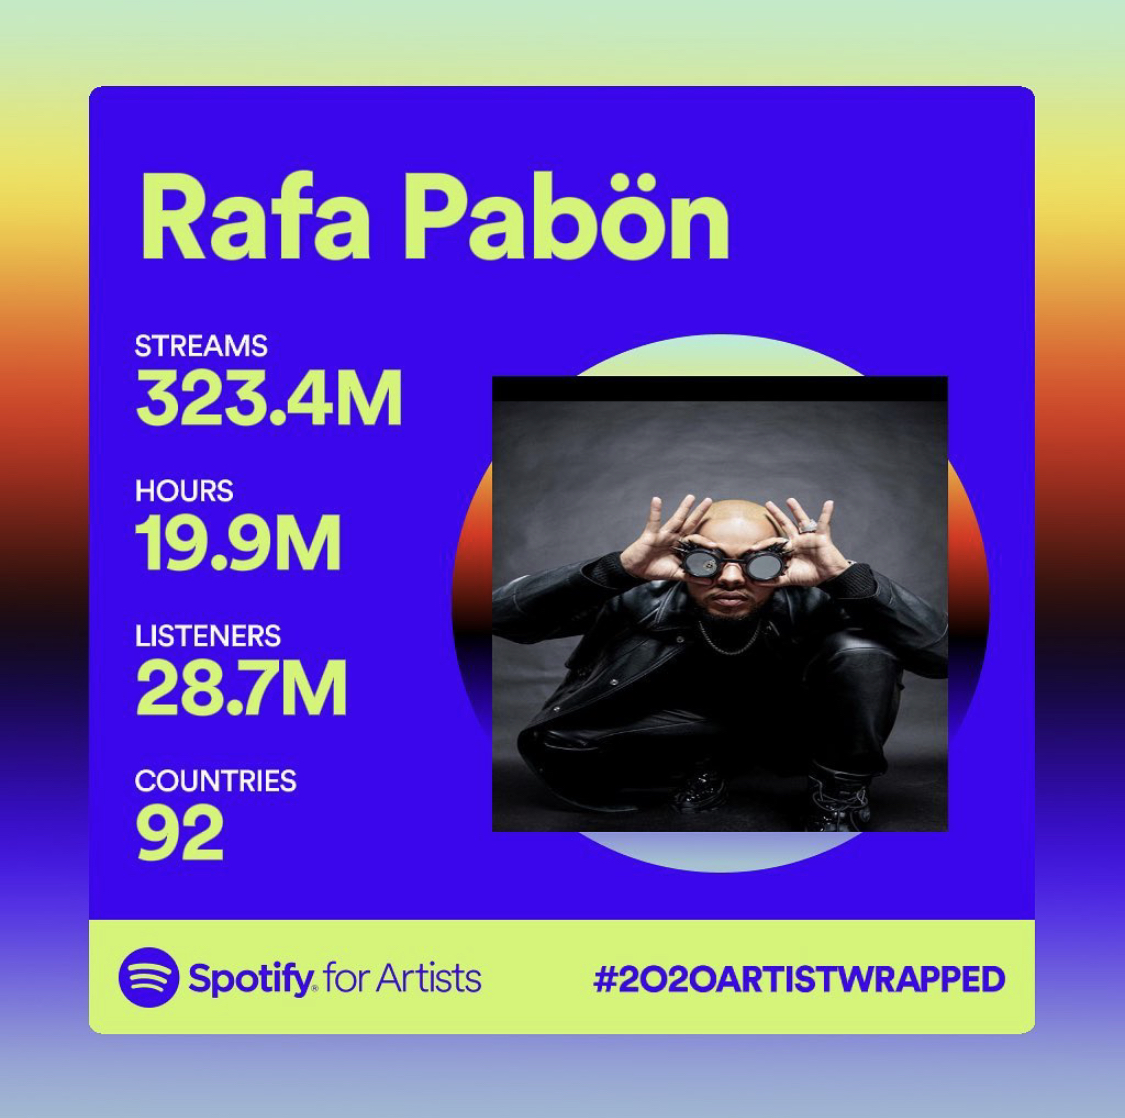 A great Year For Rafa Pabön on Spotify, over 19 Million Hours of Streaming